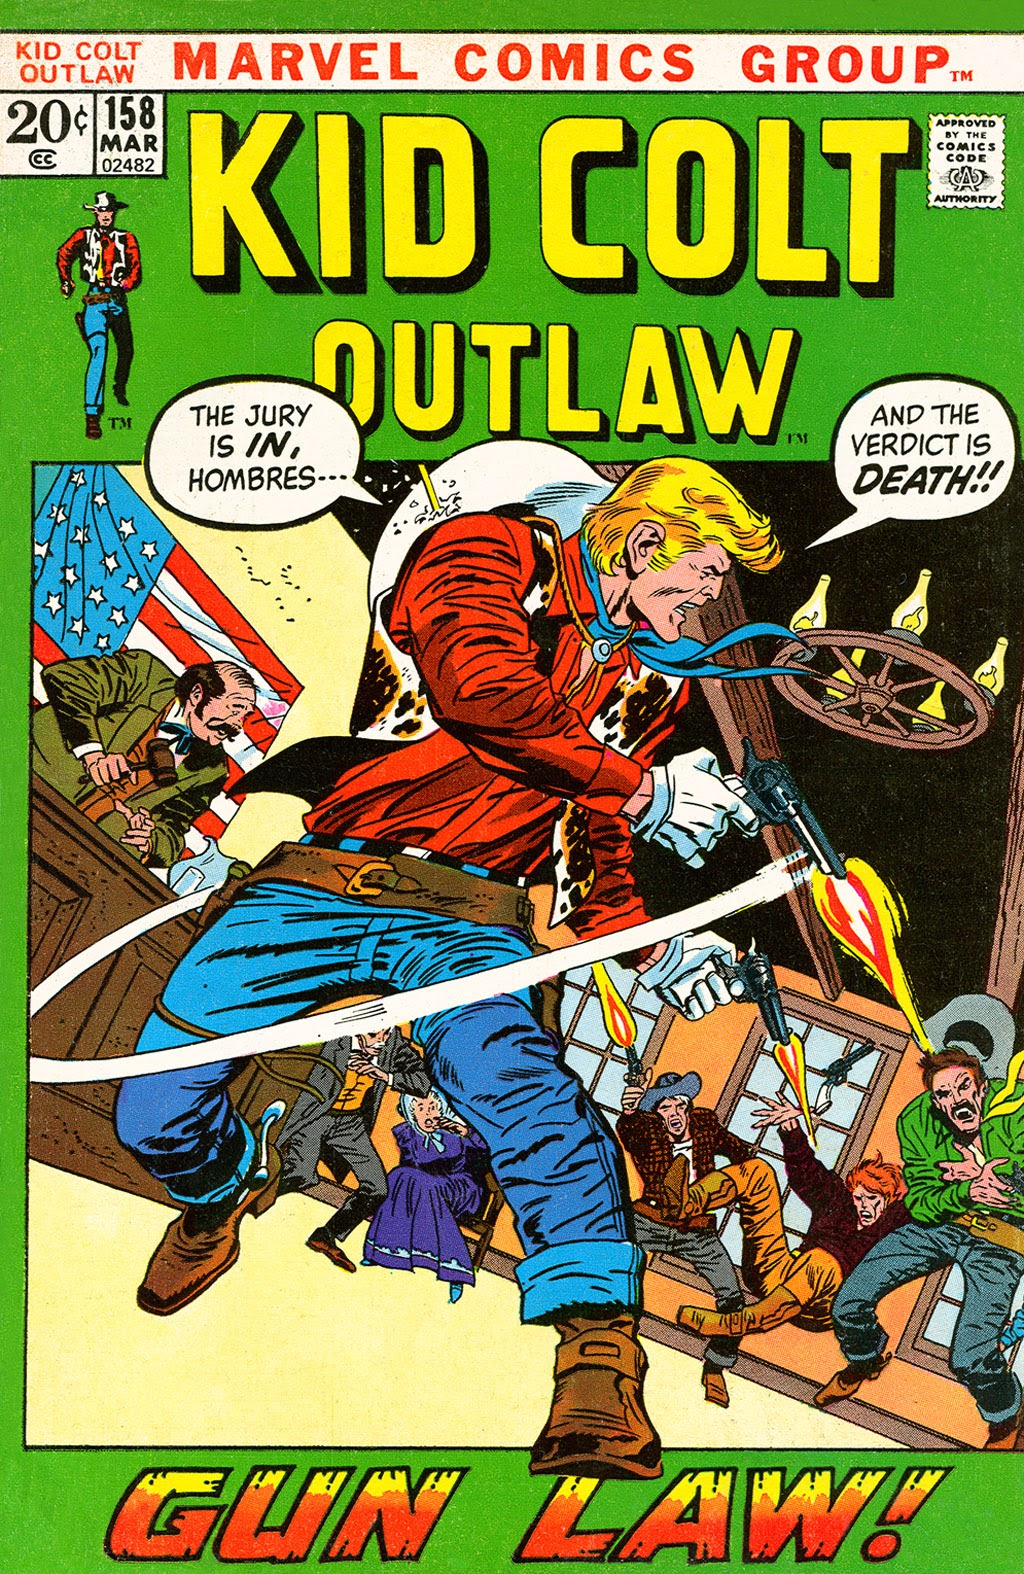 Kid Colt Outlaw issue 158 - Page 1